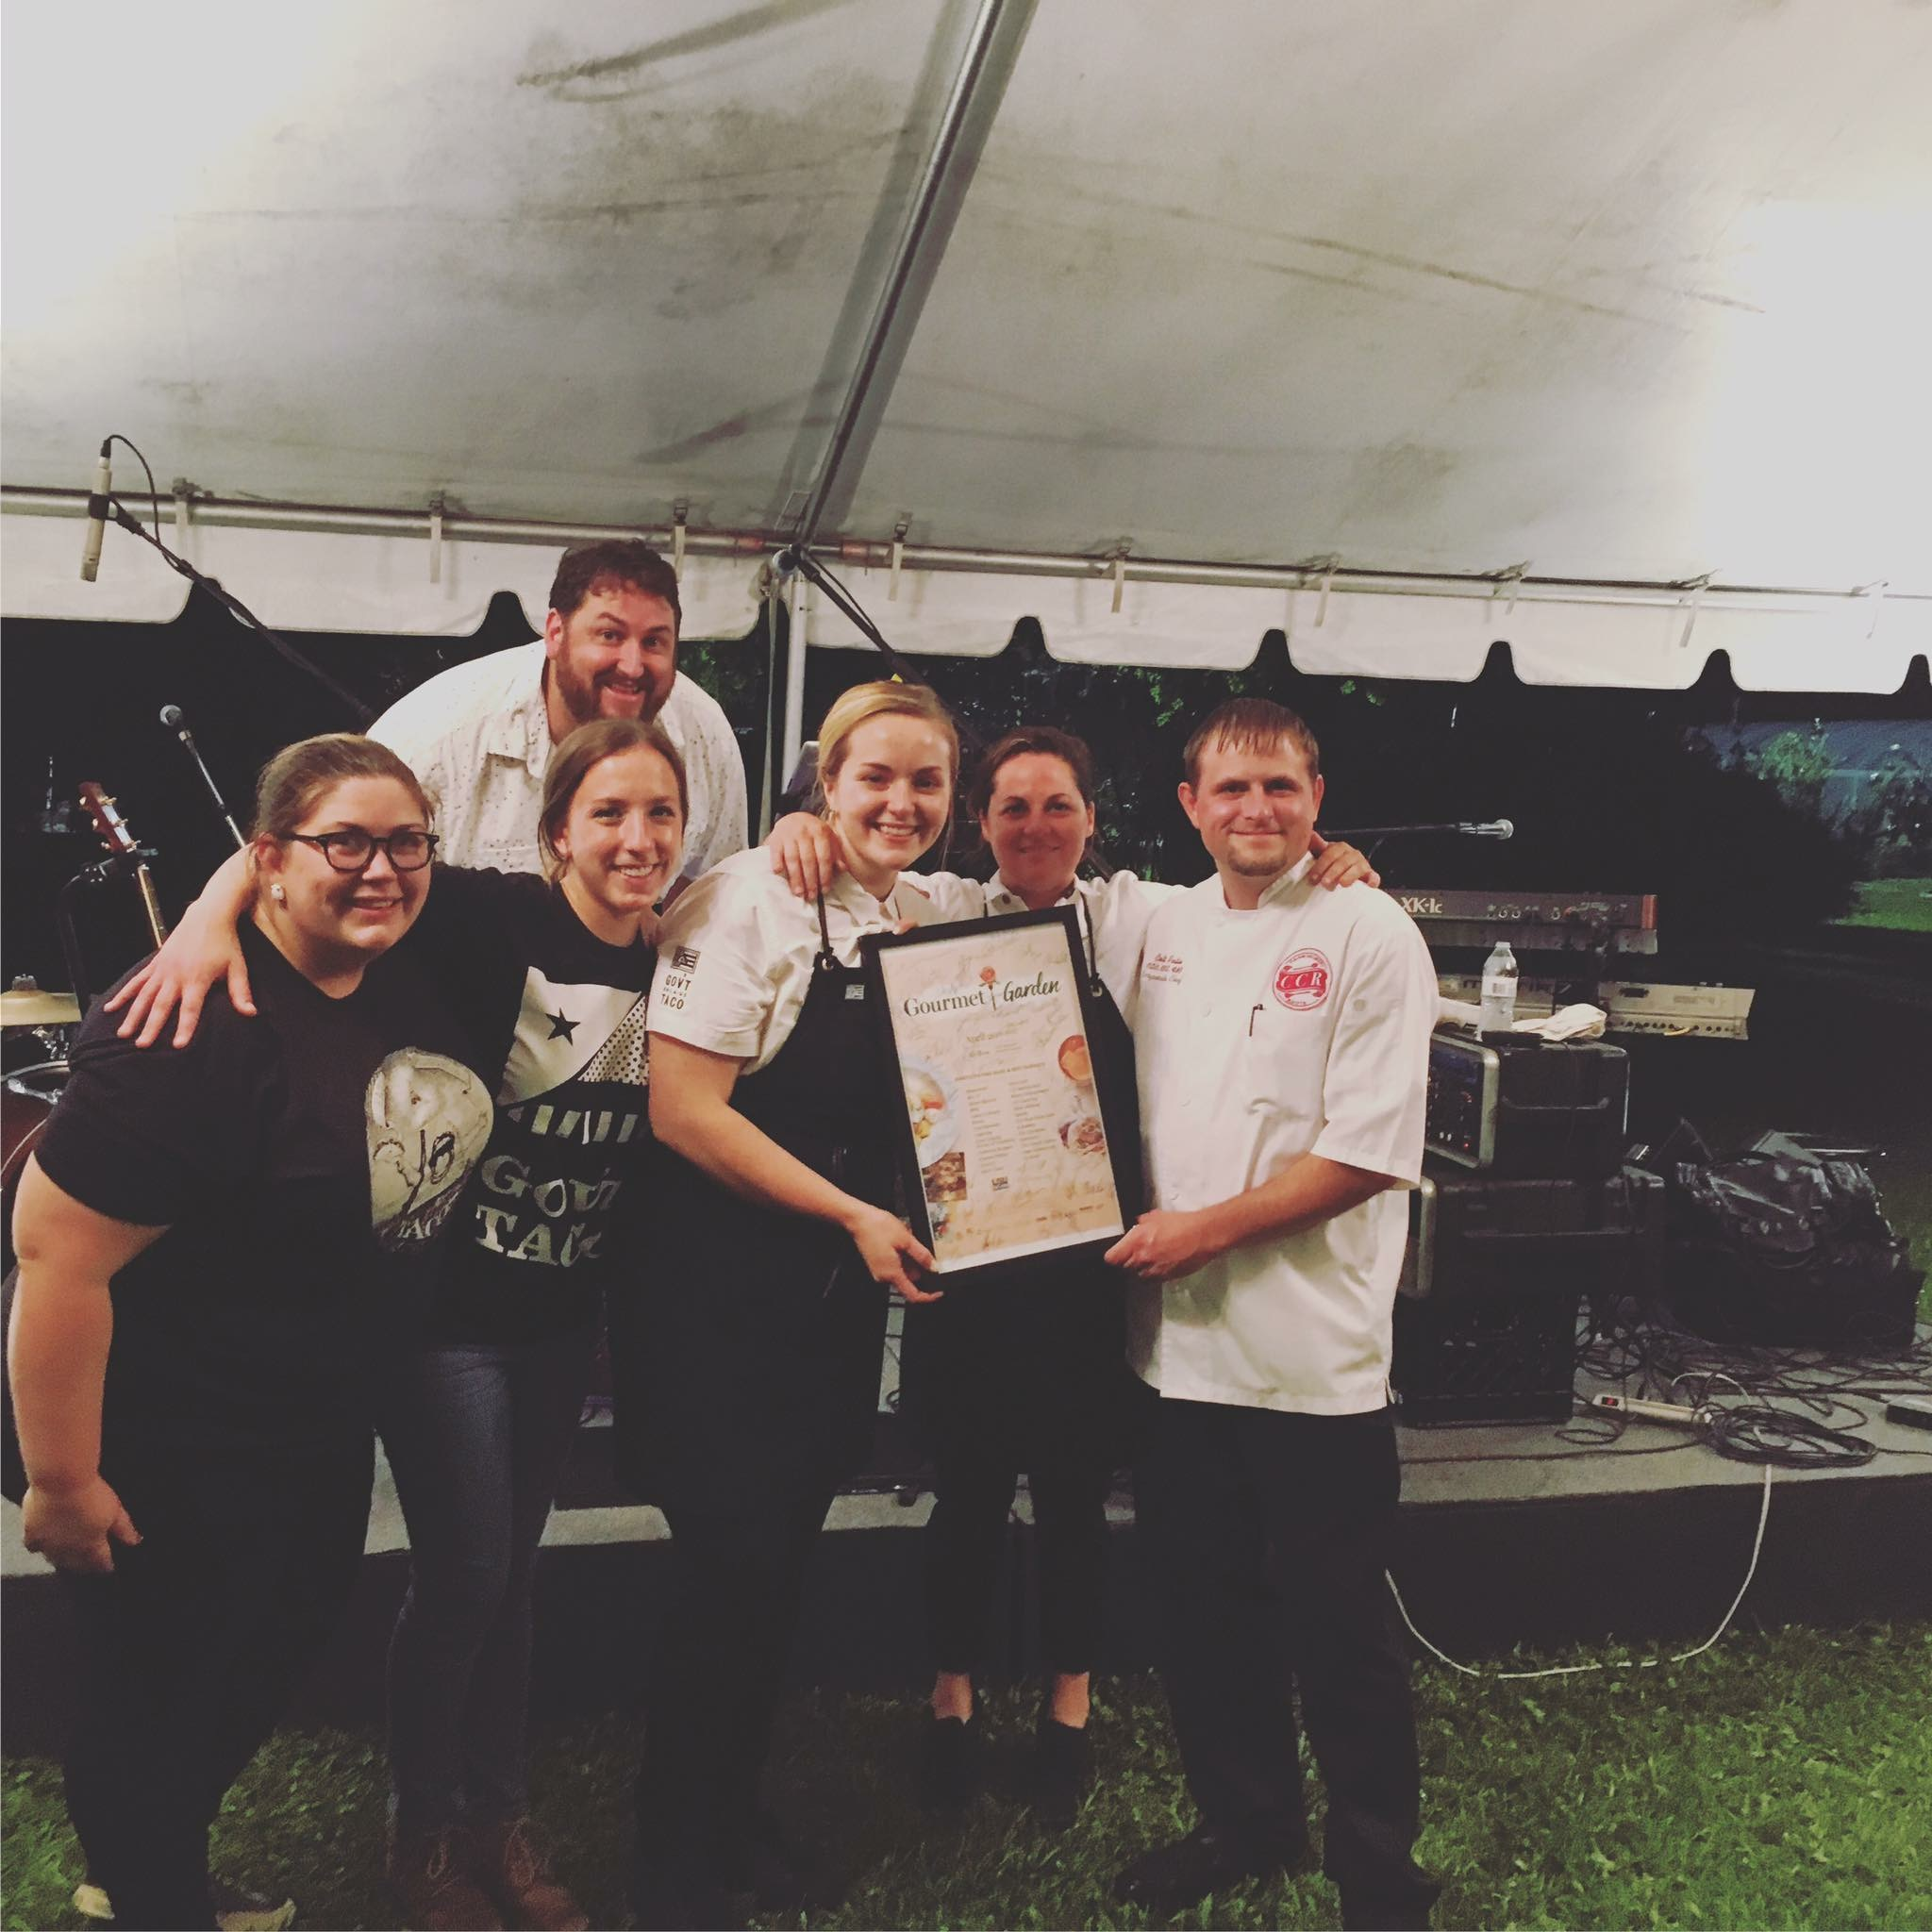 Blair Loup, Jennifer Breithaupt, Therese Schneider, Aimee Tortorich, Colt Patin (LCI) and Jay Ducote (up top) celebrate the Gov't Taco win at Gourmet in the Garden, 4/20/17